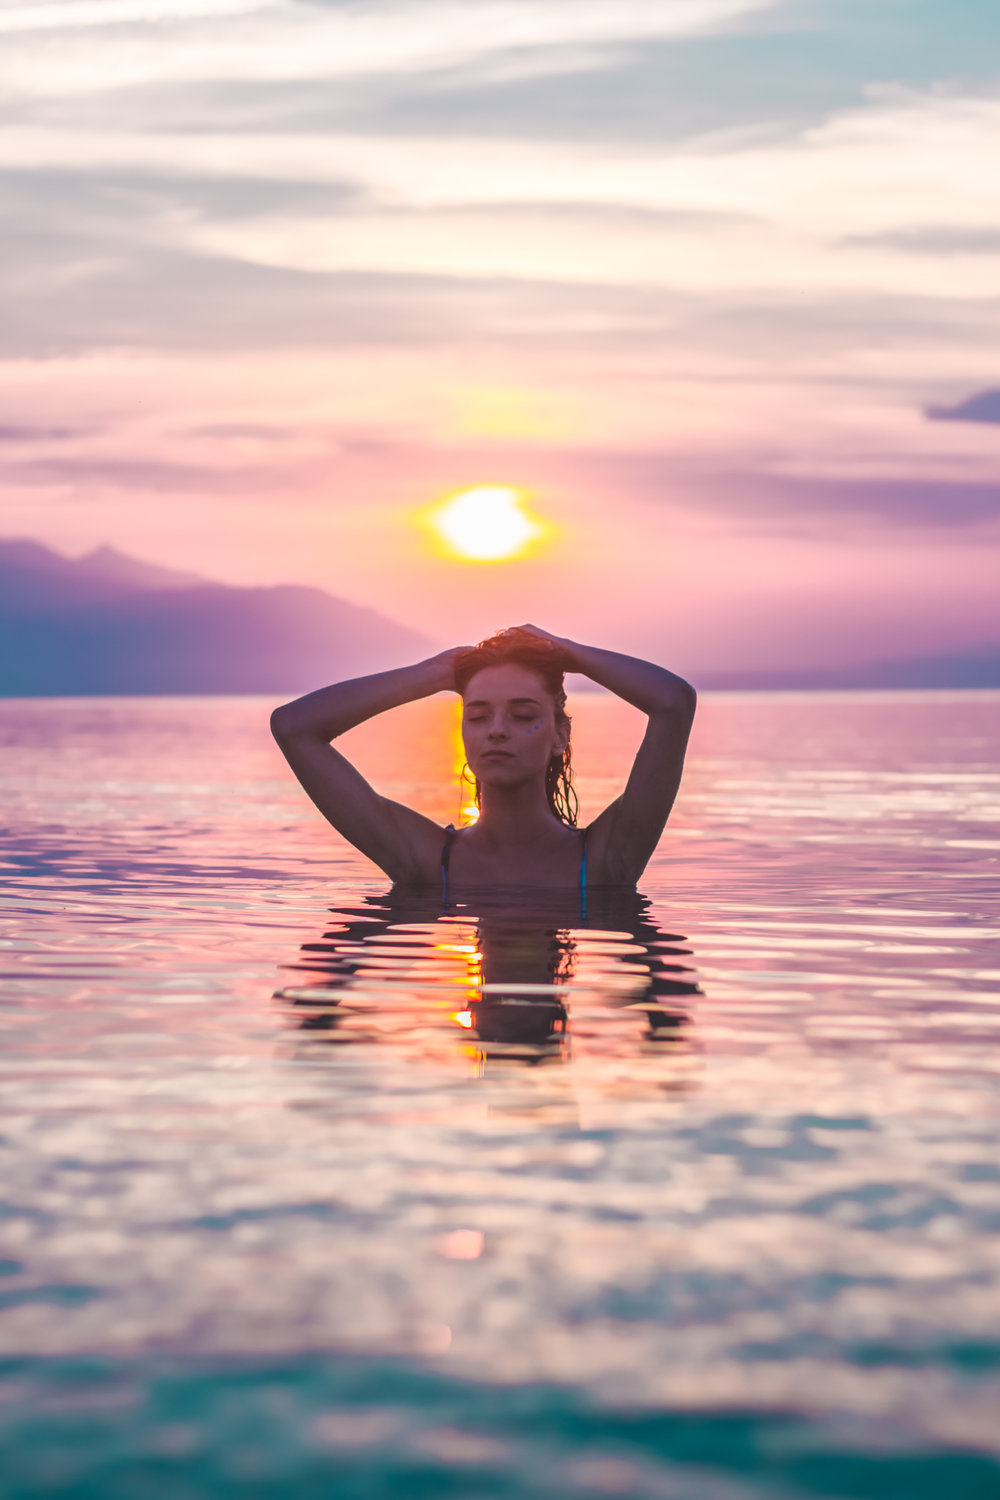 Meditation is swimming in the ocean at sunset surrounded by mountains.